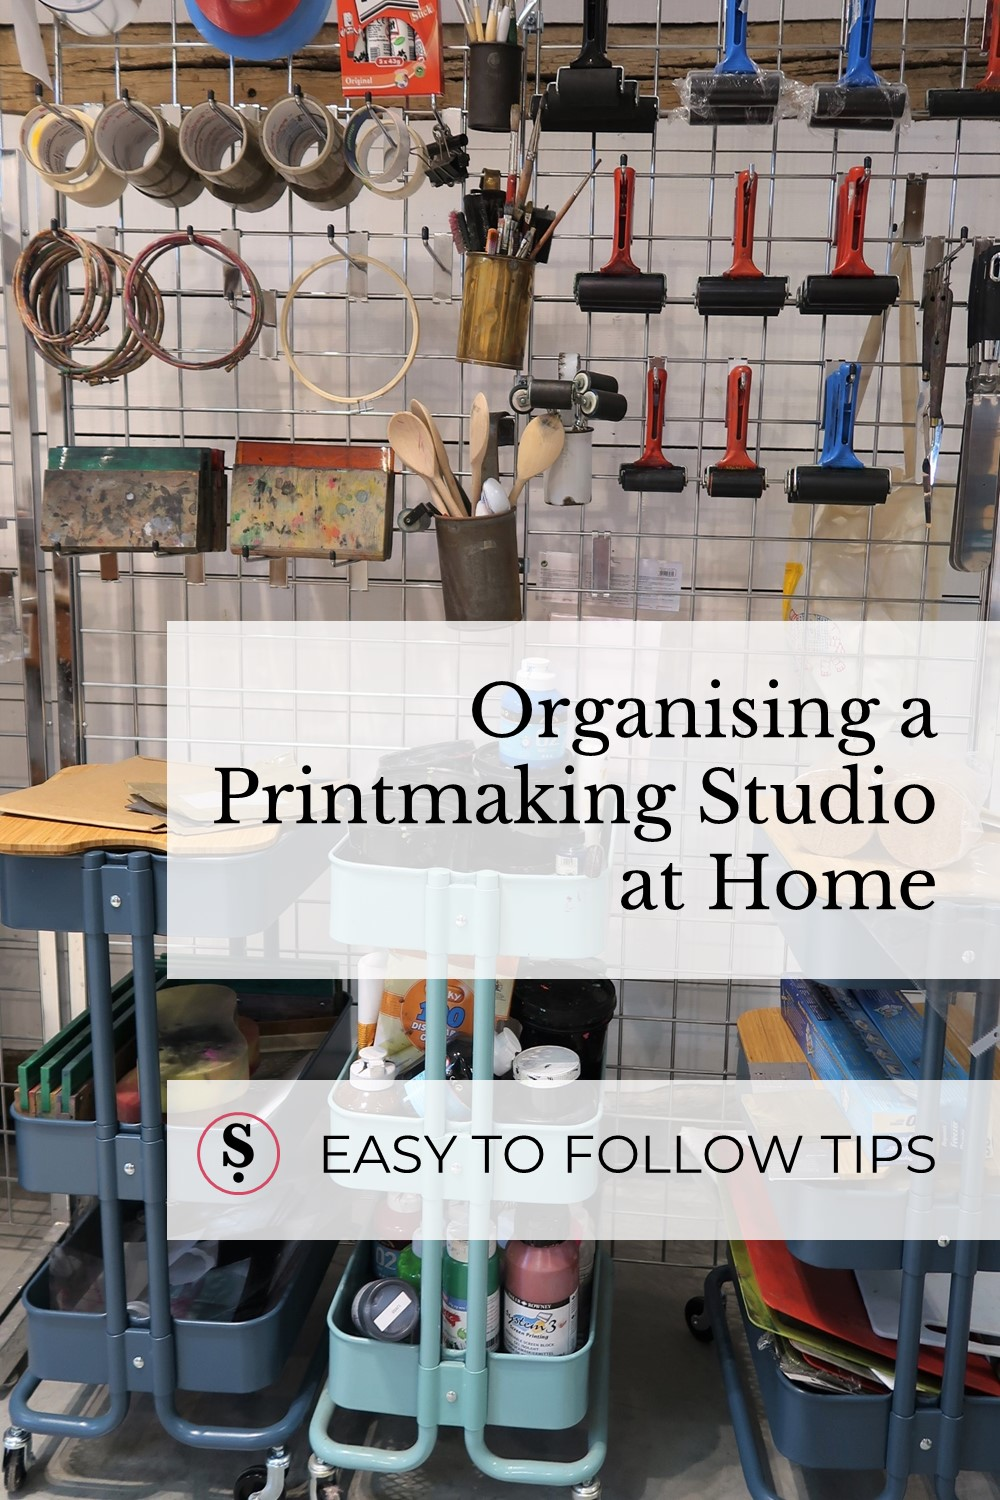 organising a printmaking studio at home text in front of racks of printmaking equipment